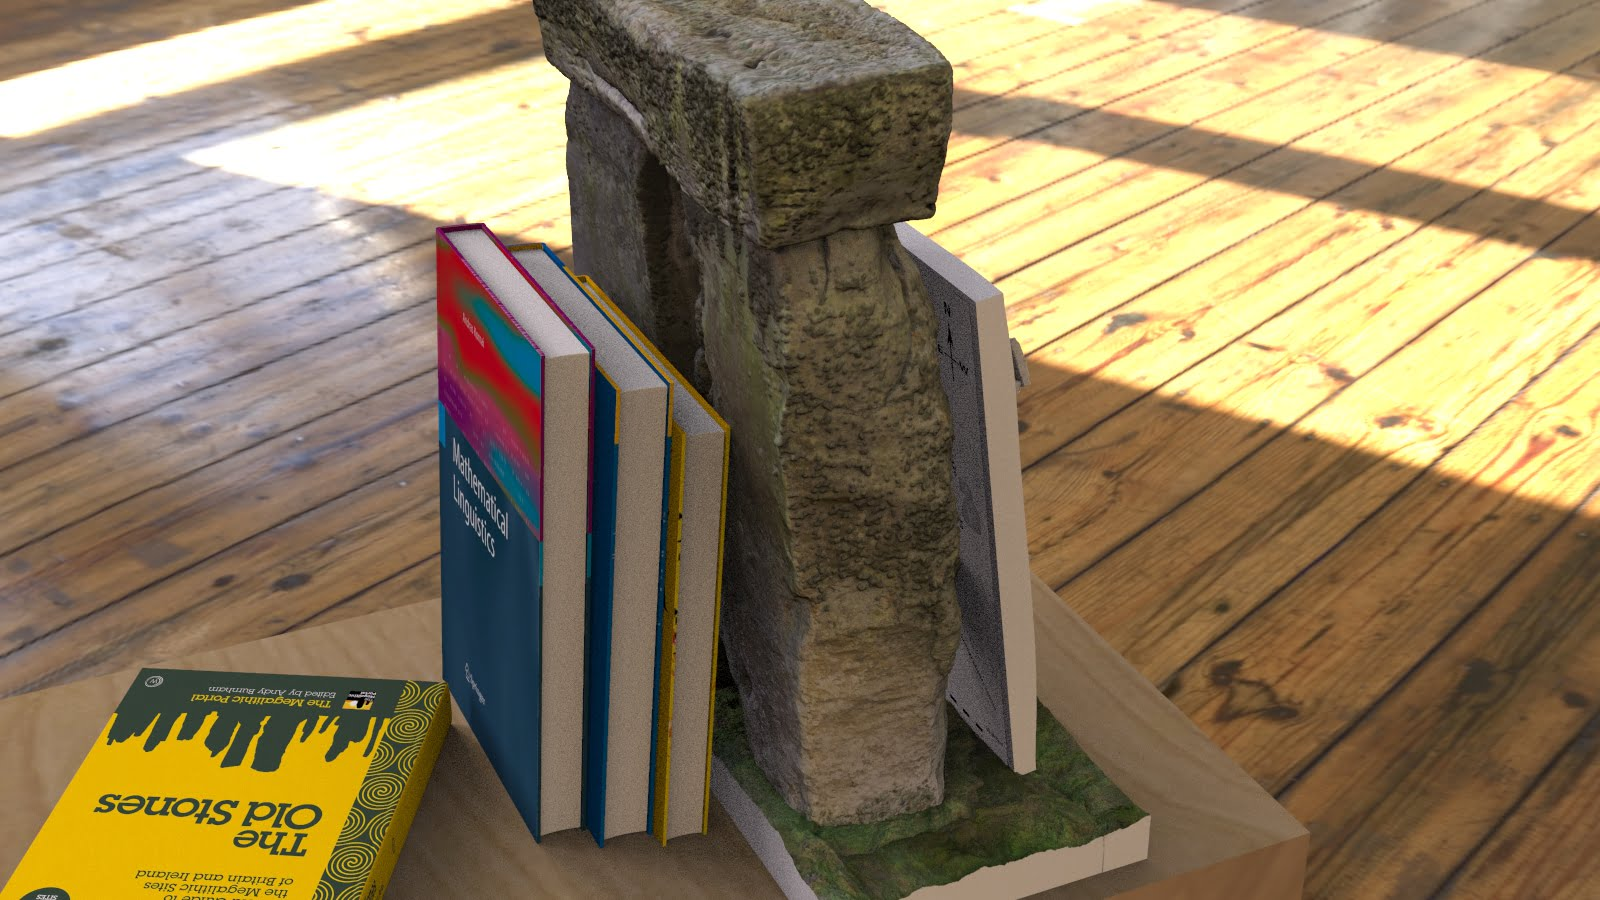 Buy Stonehenge Models: Stonehenge model replica bookend with hyper detailed gicell decals in full UV resistant colour 002  - 24th scale bookend with 200th full model -